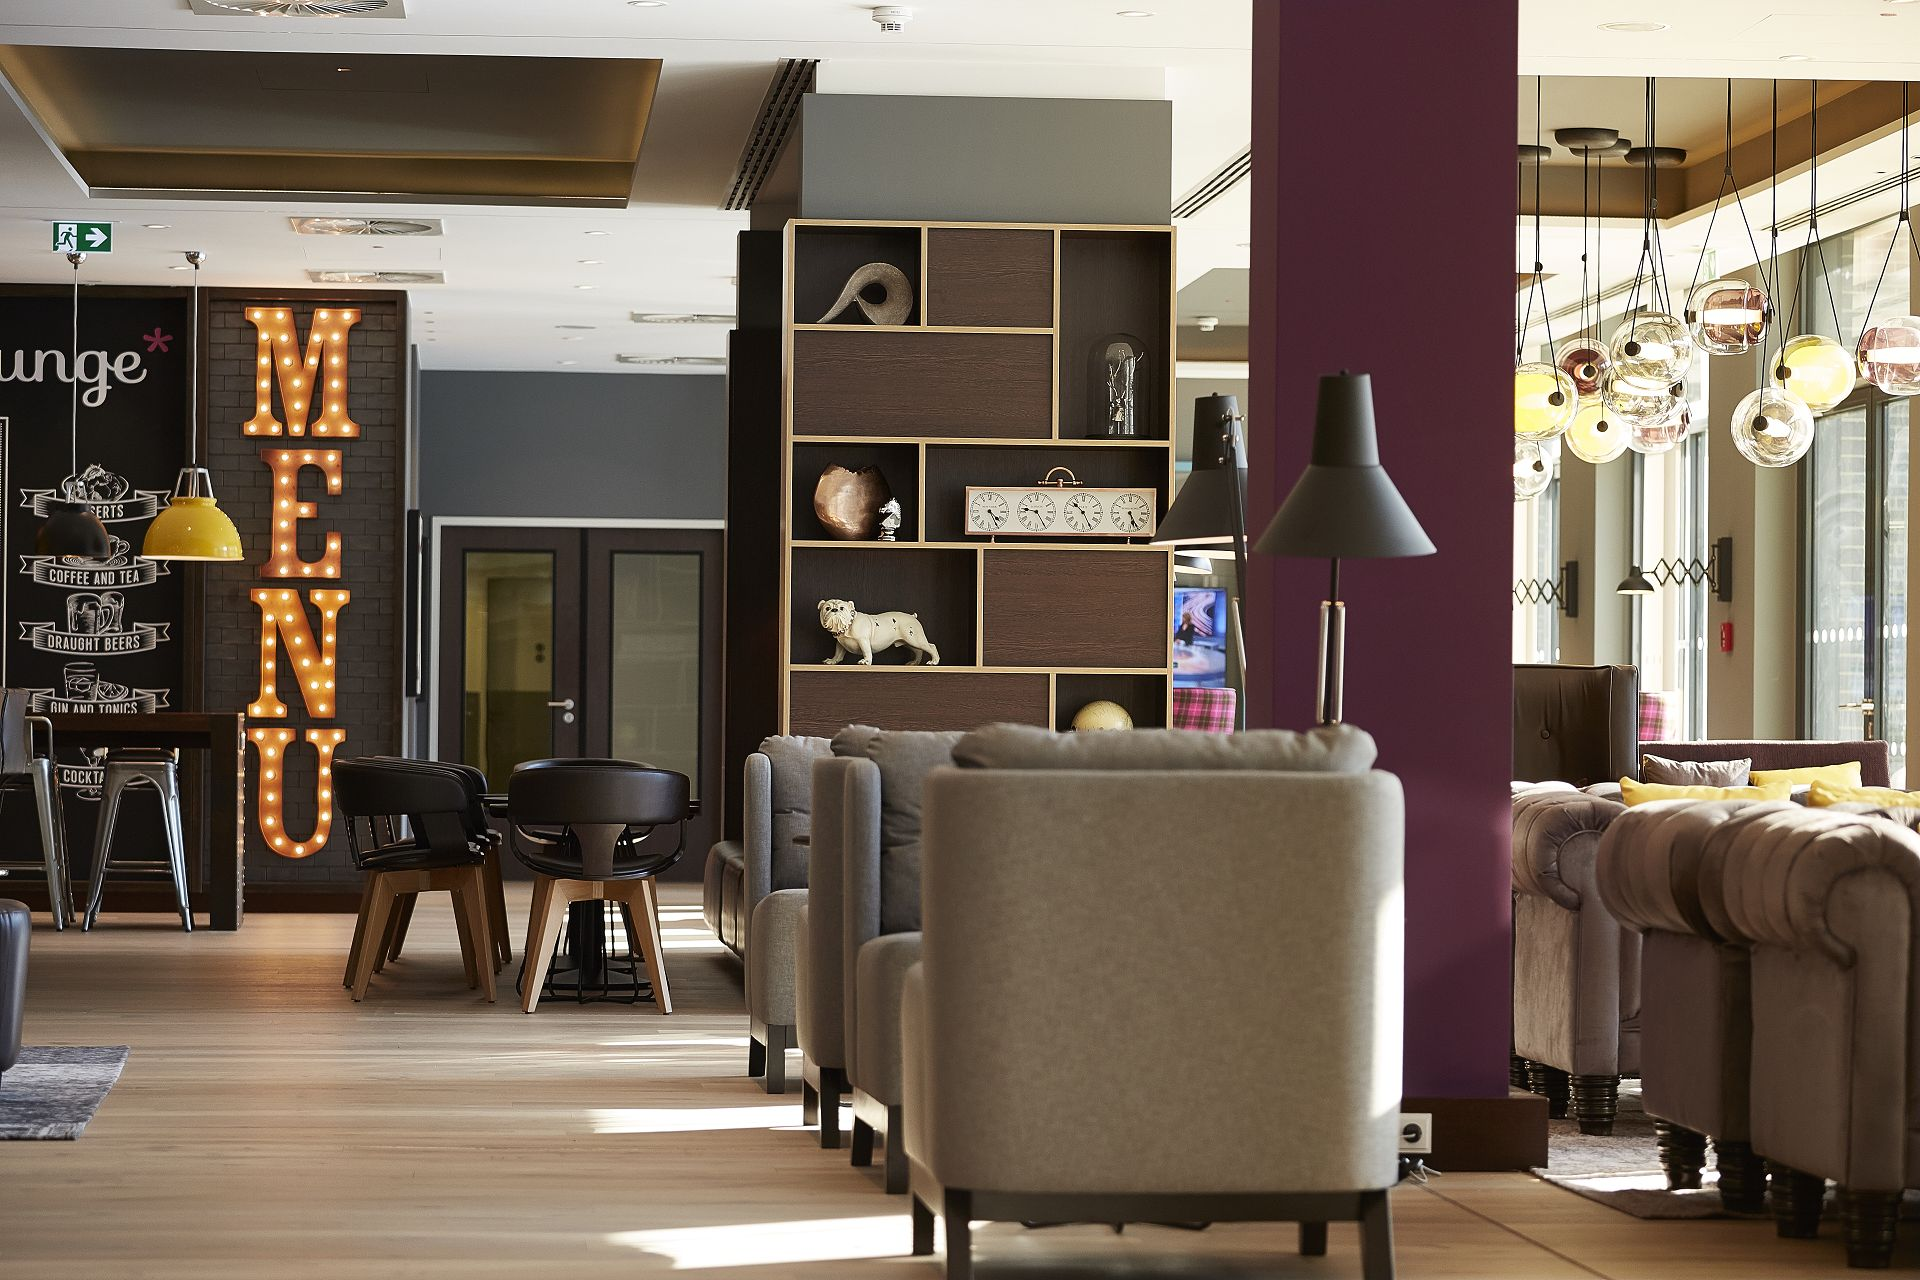 Lobby of the Premier Inn in Frankfurt am Main